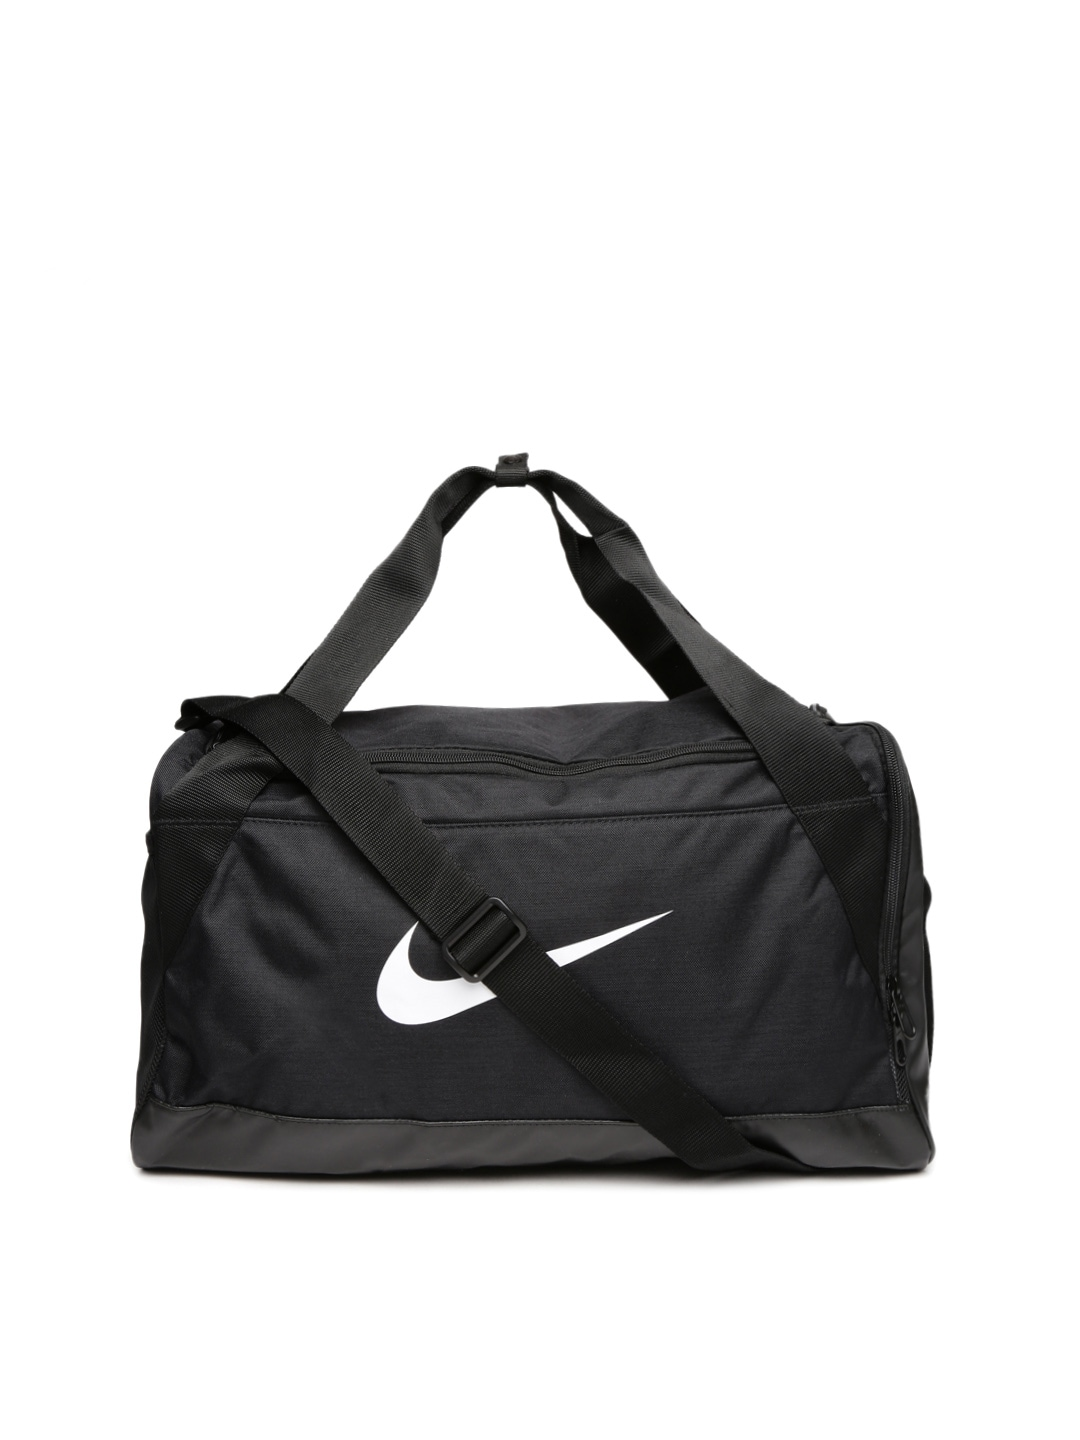 7a6330325d40 Nike Duffel Bag - Buy Nike Duffel Bag online in India